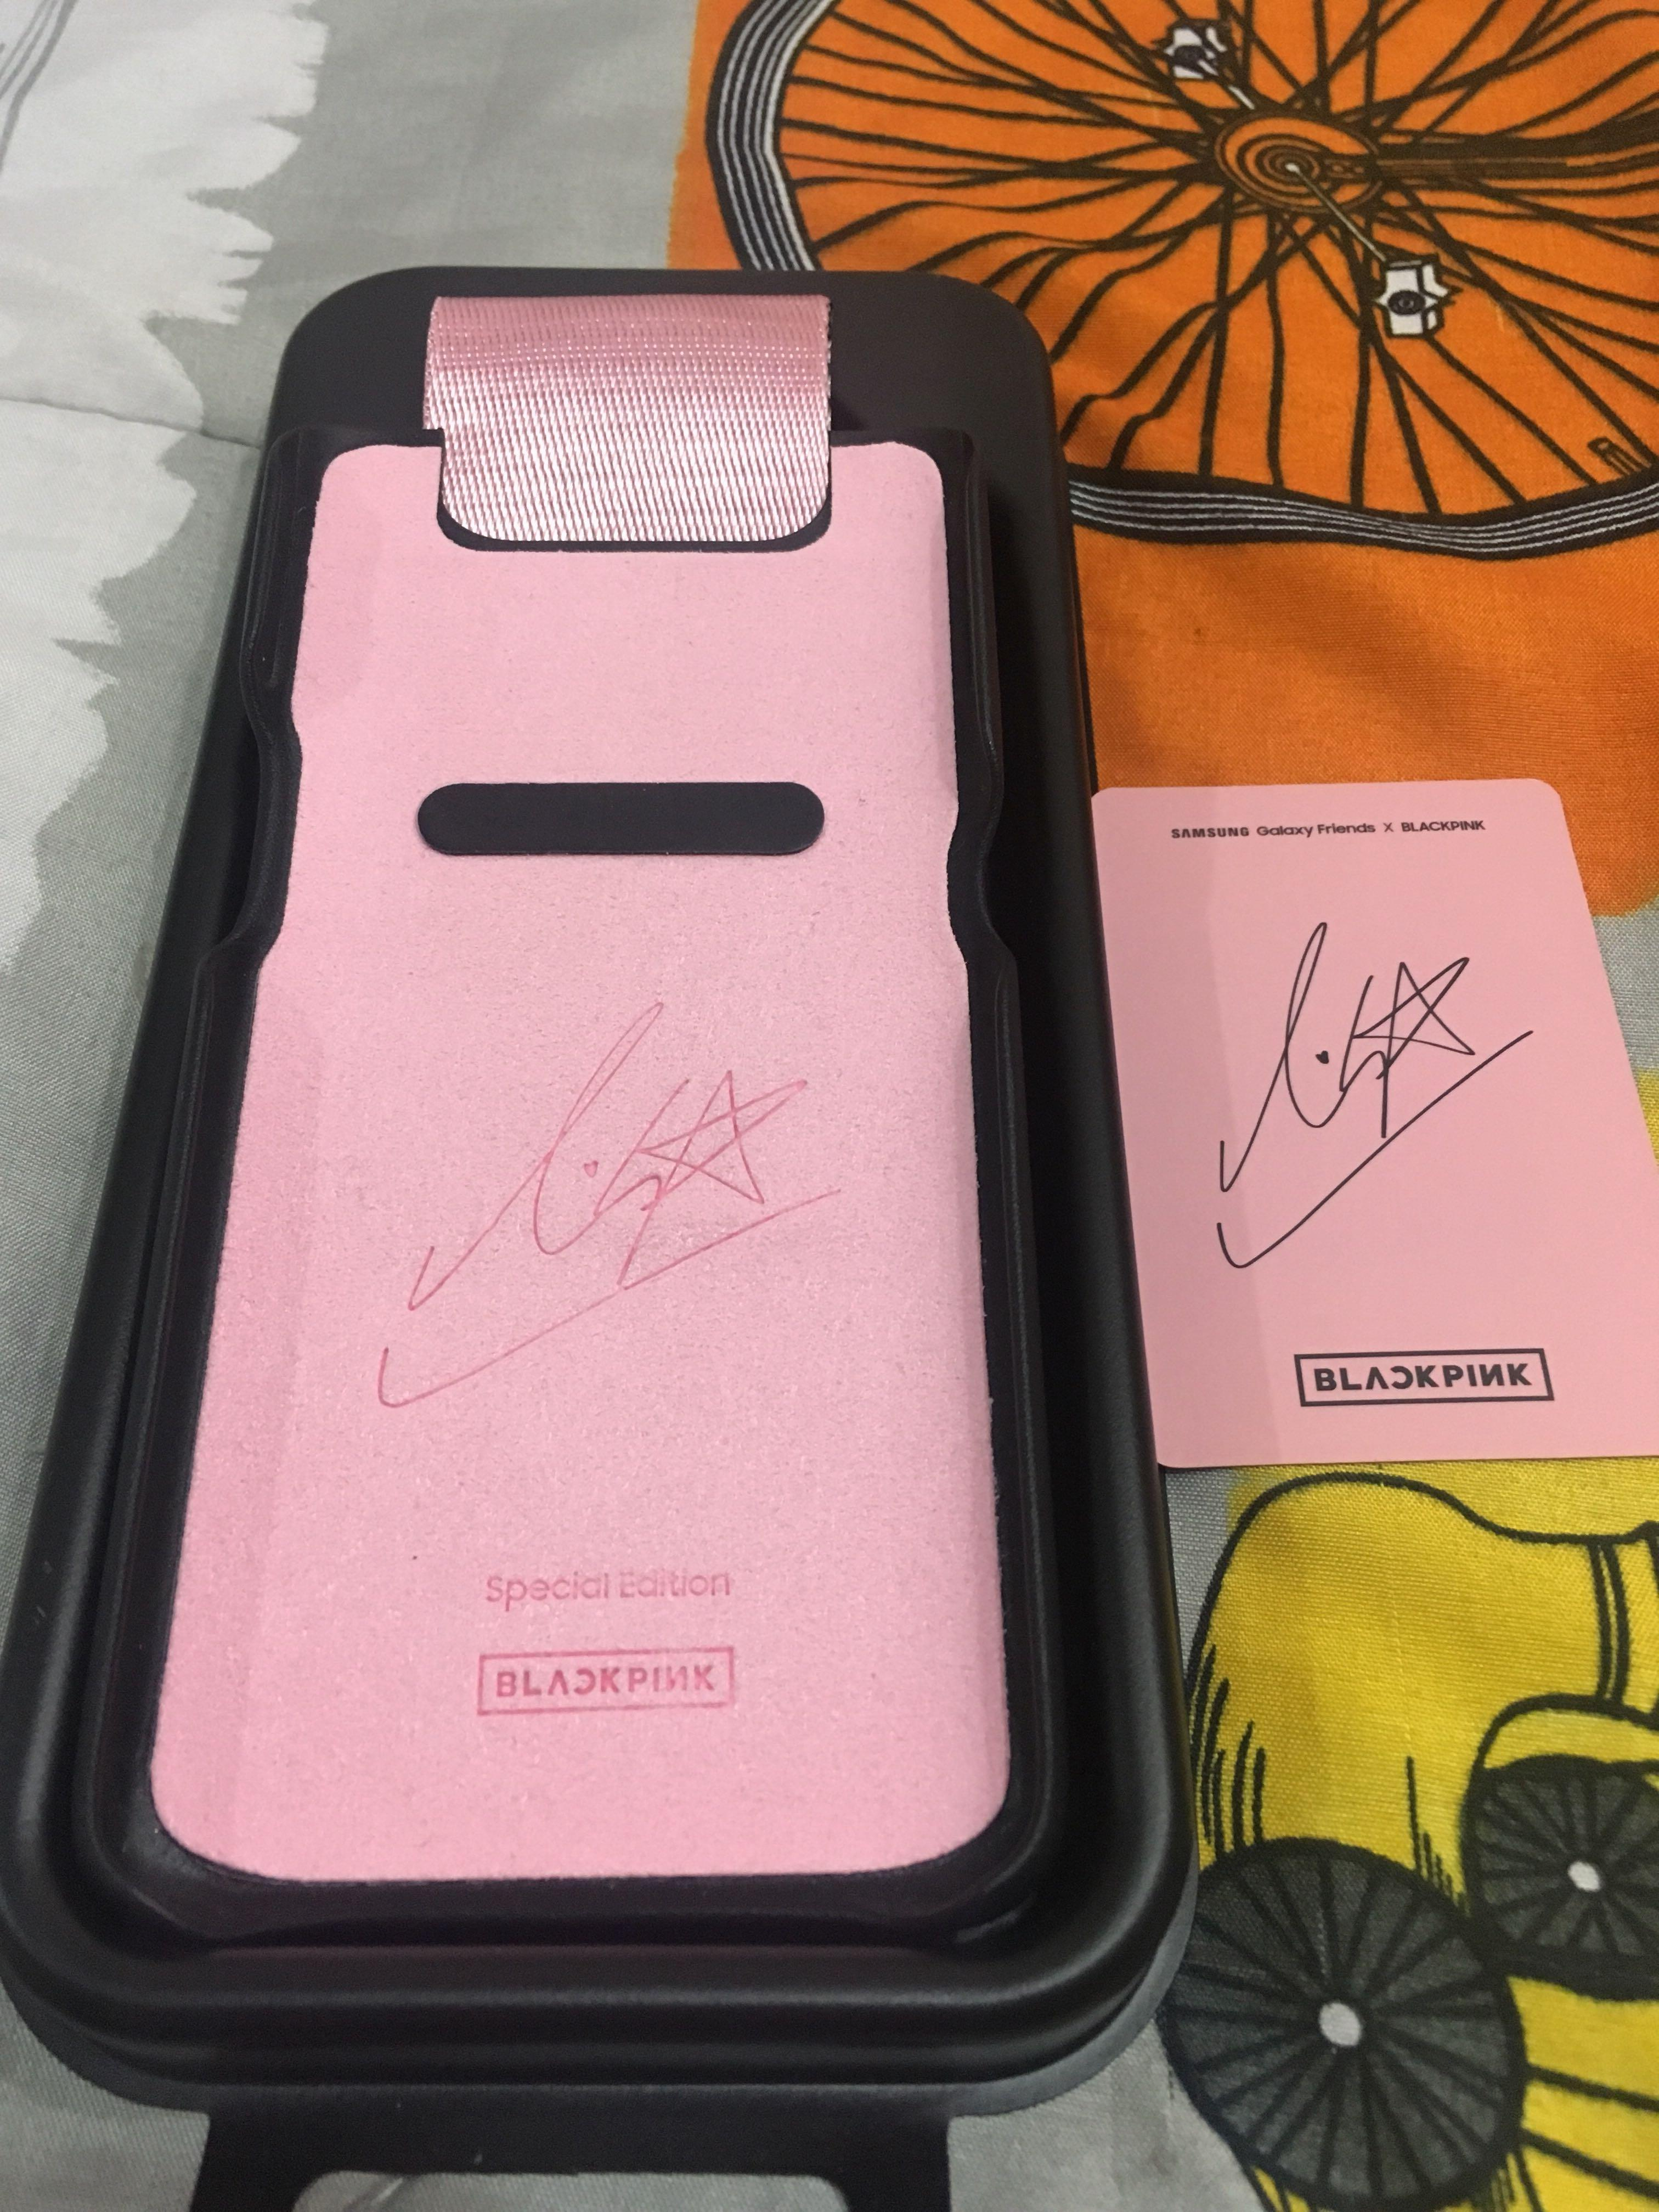 WTS LIMITED OFFICIAL SAMSUNG GALAXY x BLACKPINK PHOTOCARD & CASING